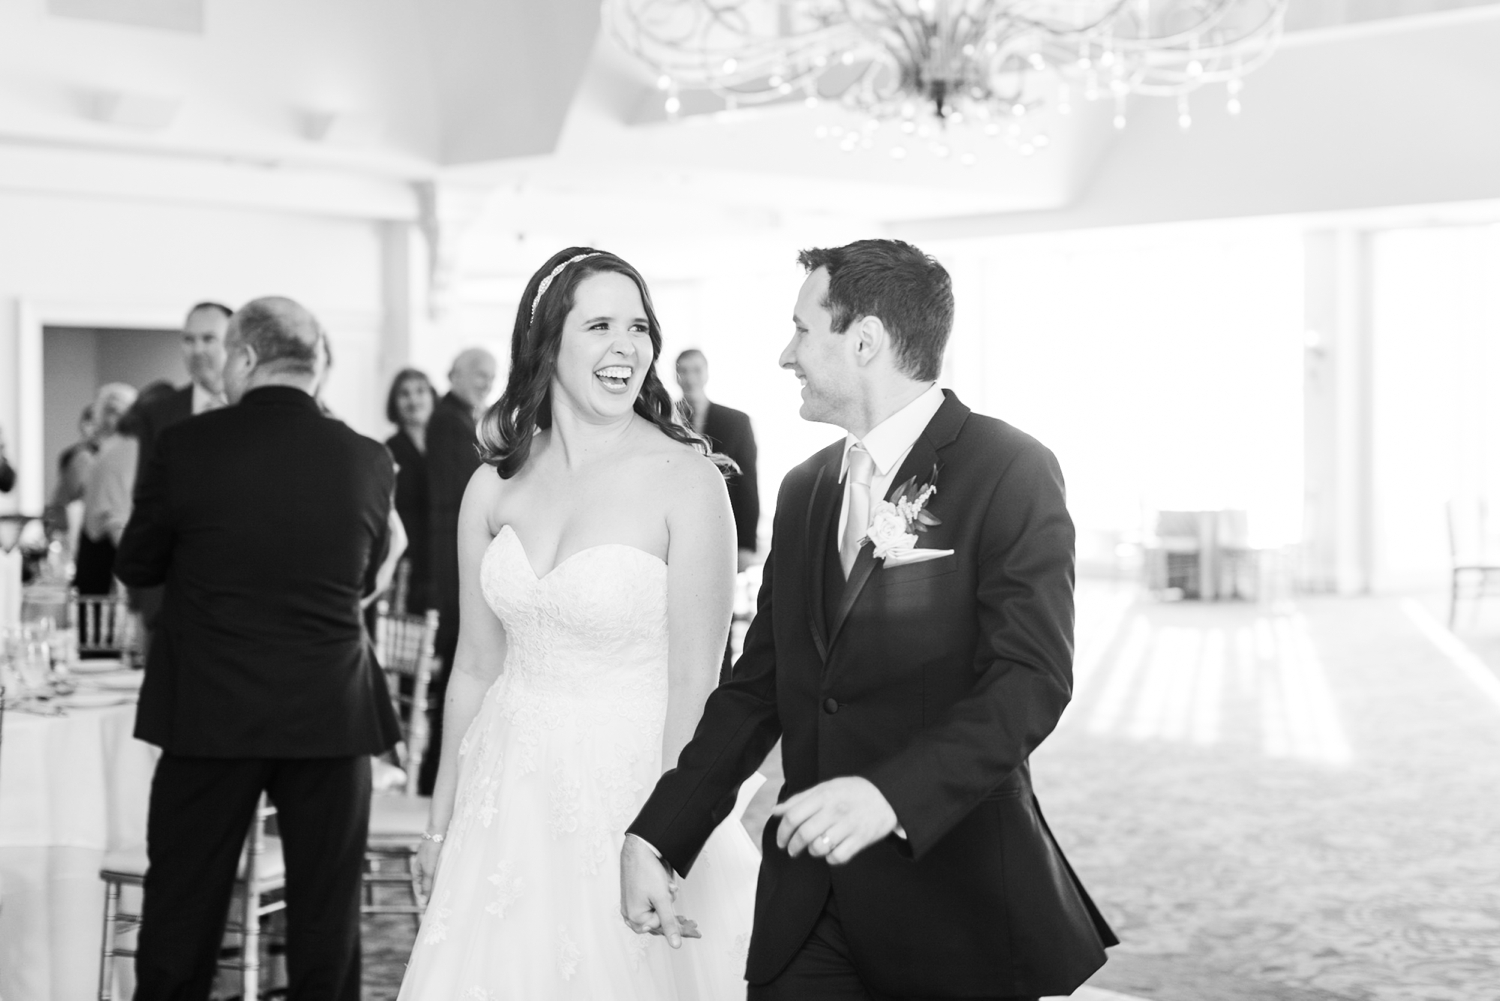 waterview-wedding-monroe-connecticut-new-york-hawaii-photographer-shaina-lee-photography-photo